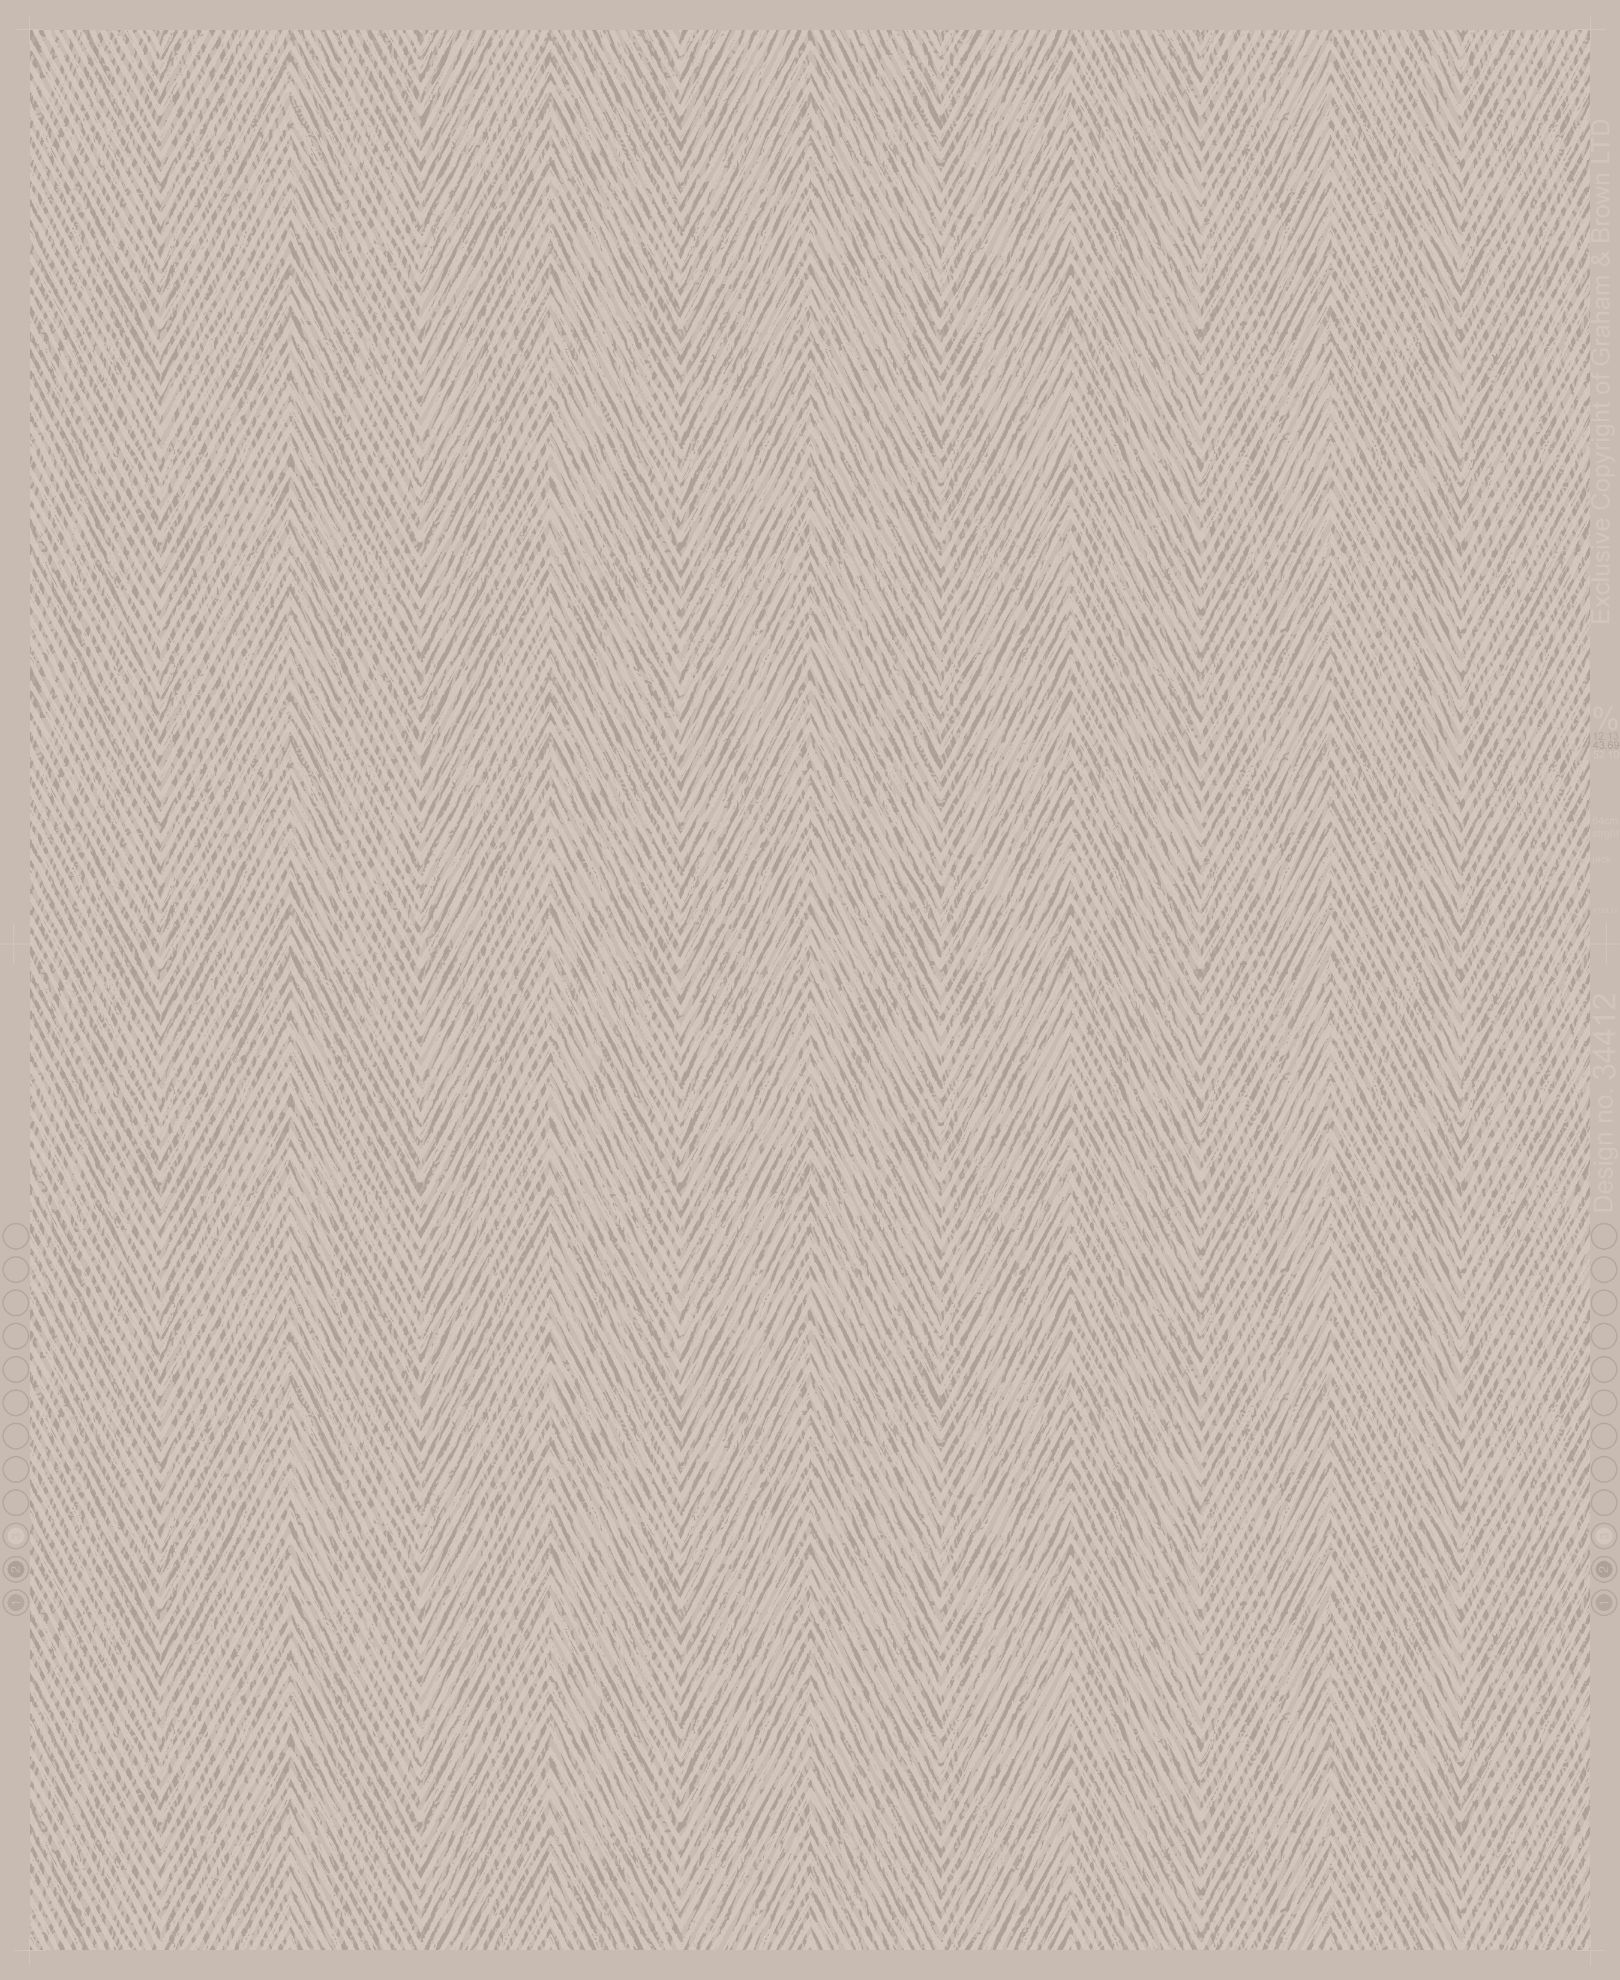 Superfresco Gabardine Taupe Subtle Textured Plain Wallpaper